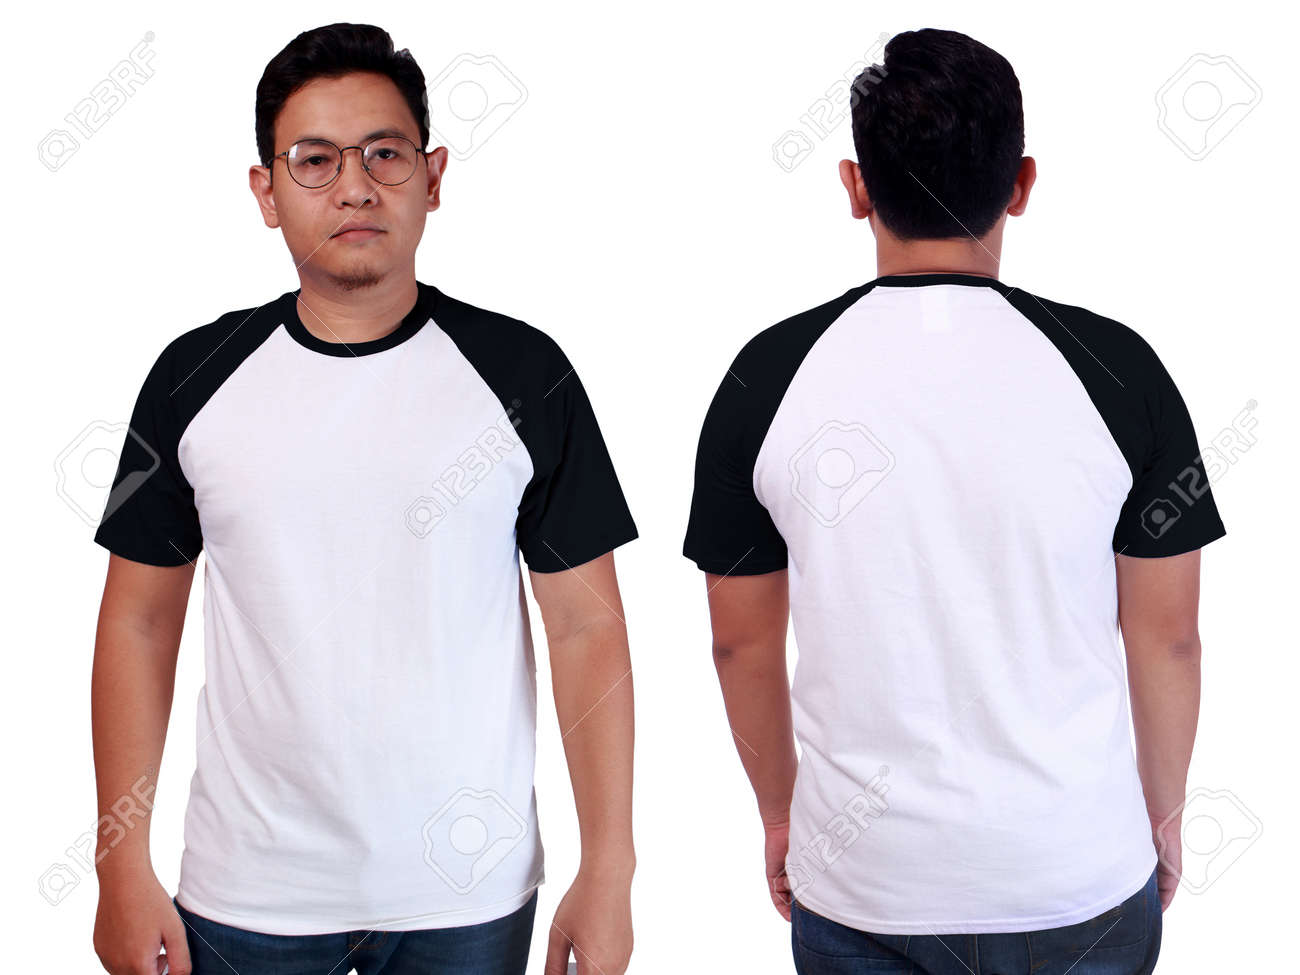 Blank Tshirt Mock Up Front And Back View Isolated On White